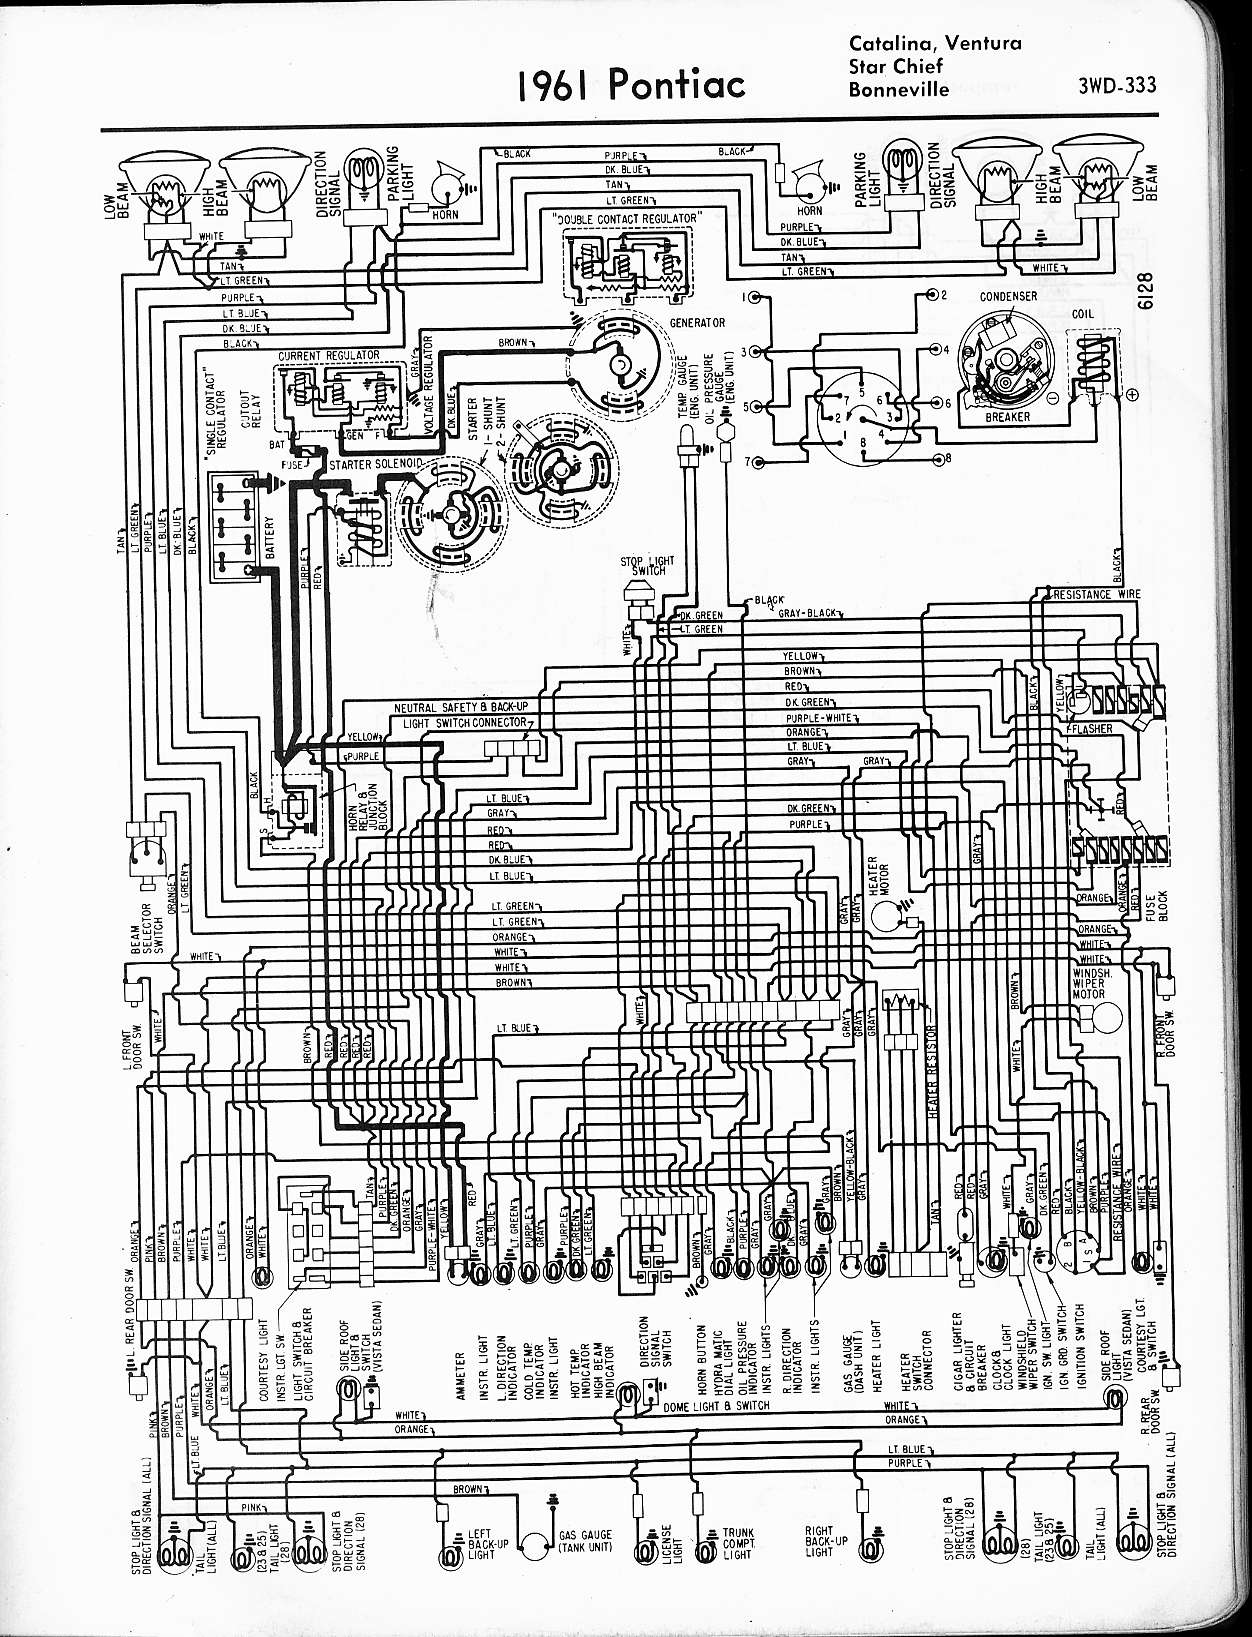 2007 Pontiac G5 Fuse Diagram Wiring Library 07 G6 Wallace Racing Diagrams Rh Wallaceracing Com For